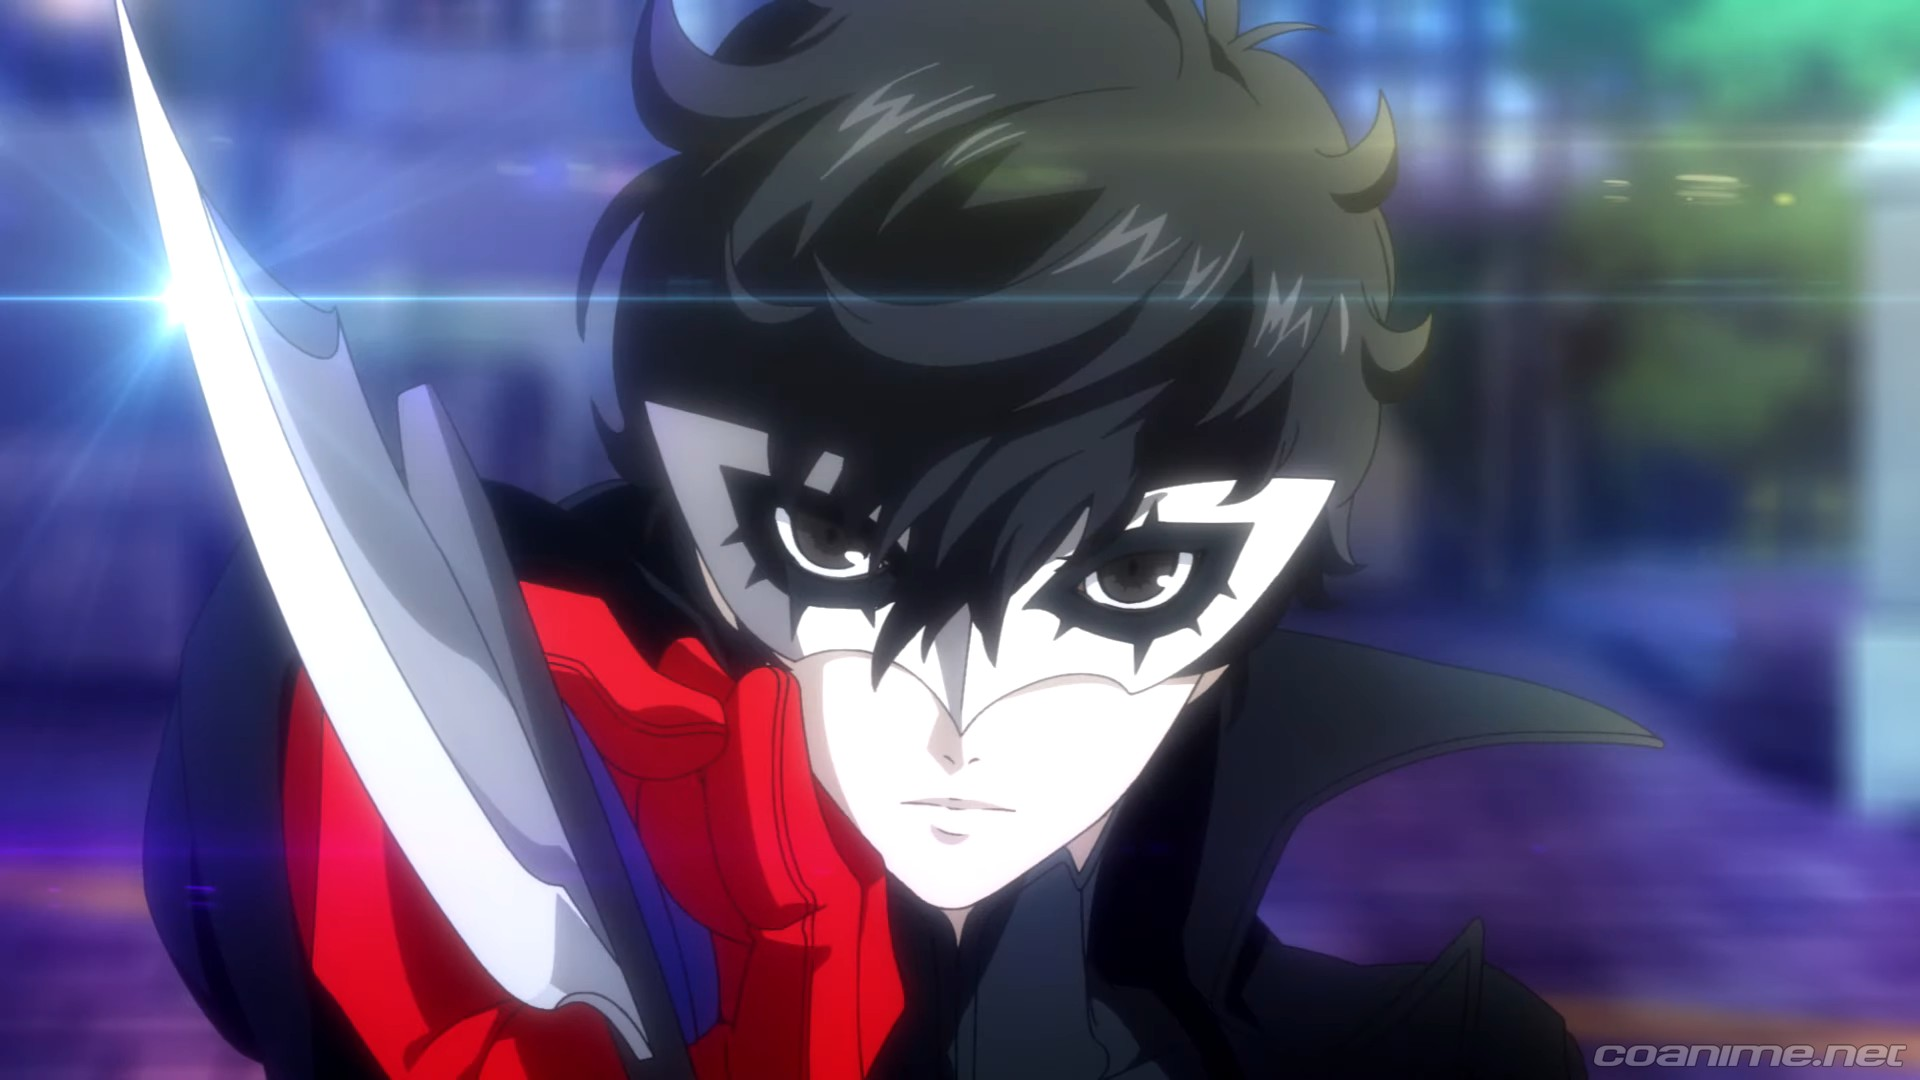 Nuevo Video de Persona 5 Scramble: The Phantom Strikers - Coanime